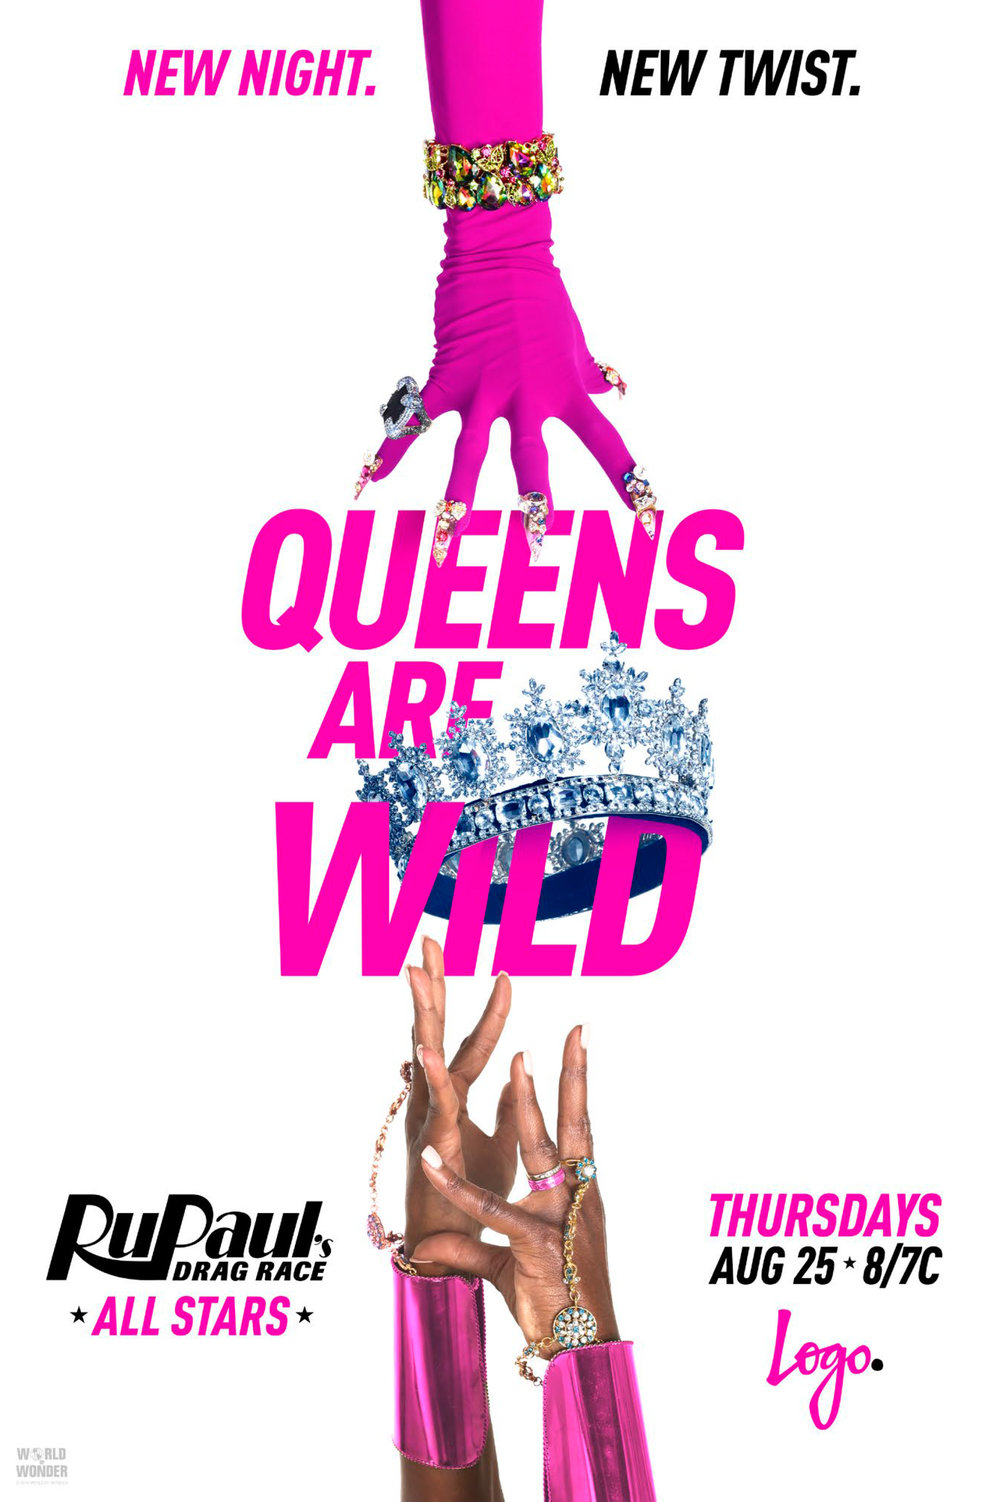 - The digital, outdoor and event campaign followed suit with a custom wrapped Big Gay Ice Cream truck promoted the premiere at select locations in NYC with live appearances by the Queens themselves!